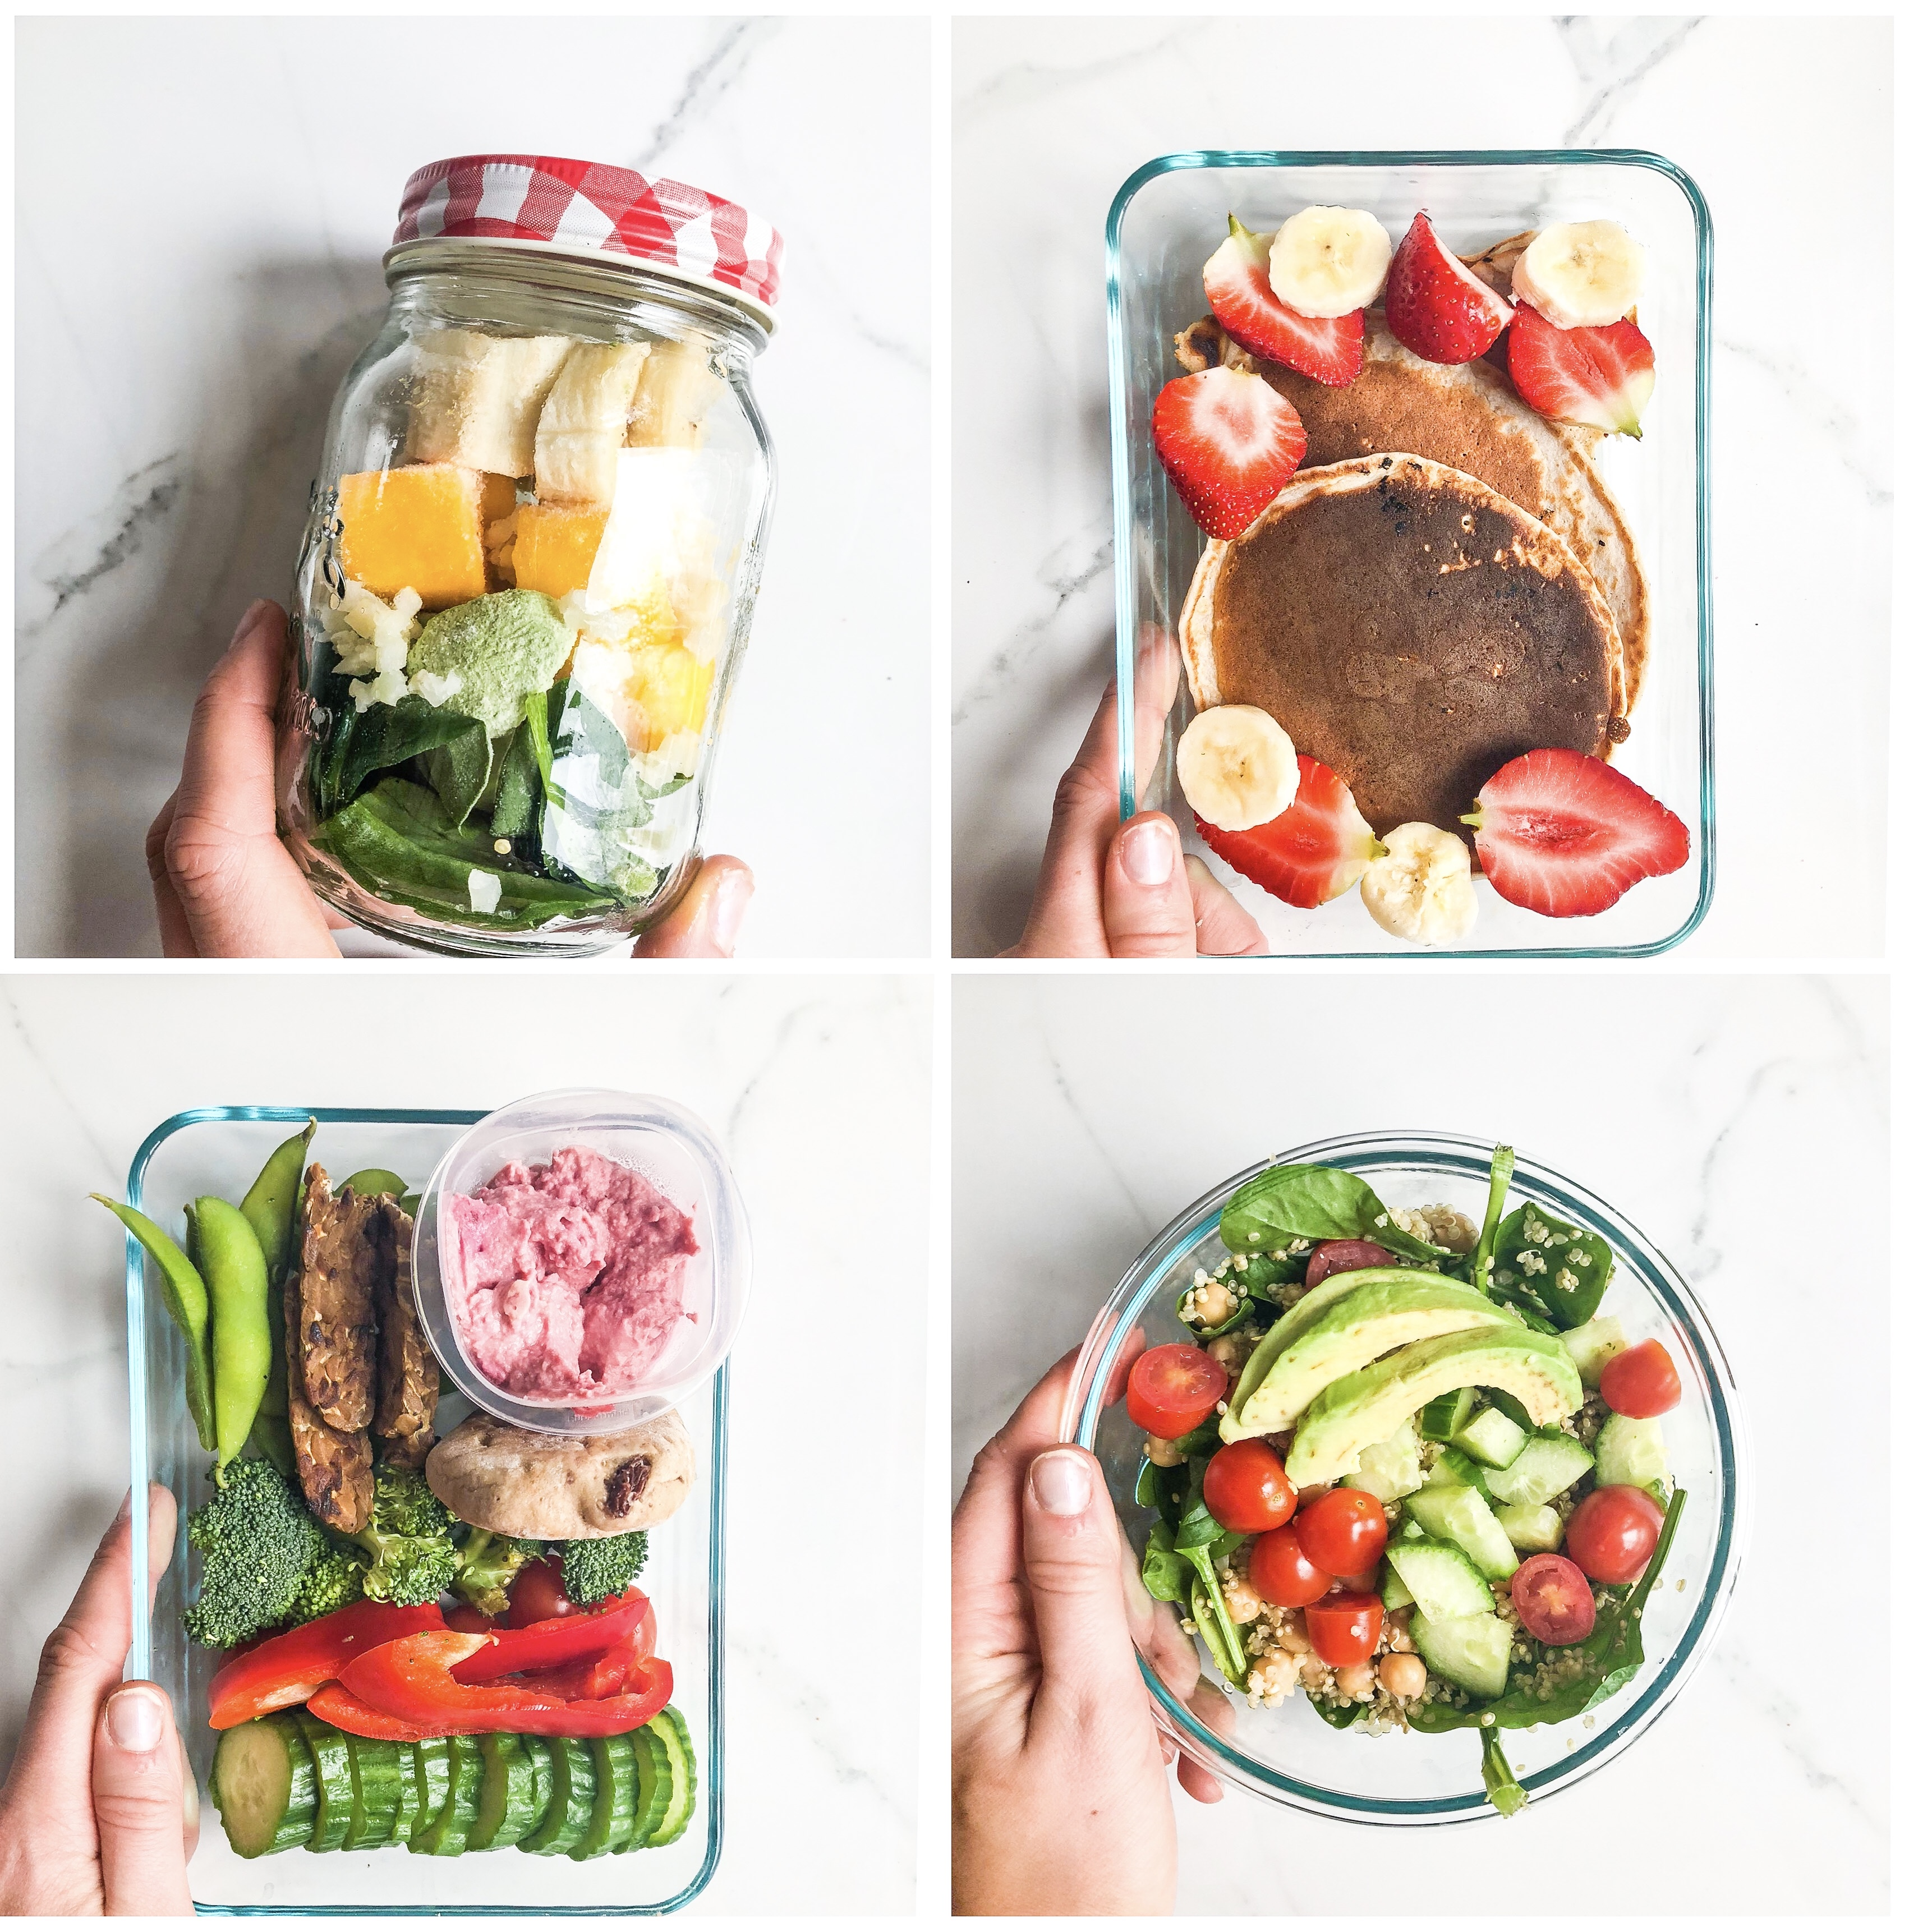 I've Changed my Eating: My Perspective on Small Frequent Meals Vs A Few Larger Meals